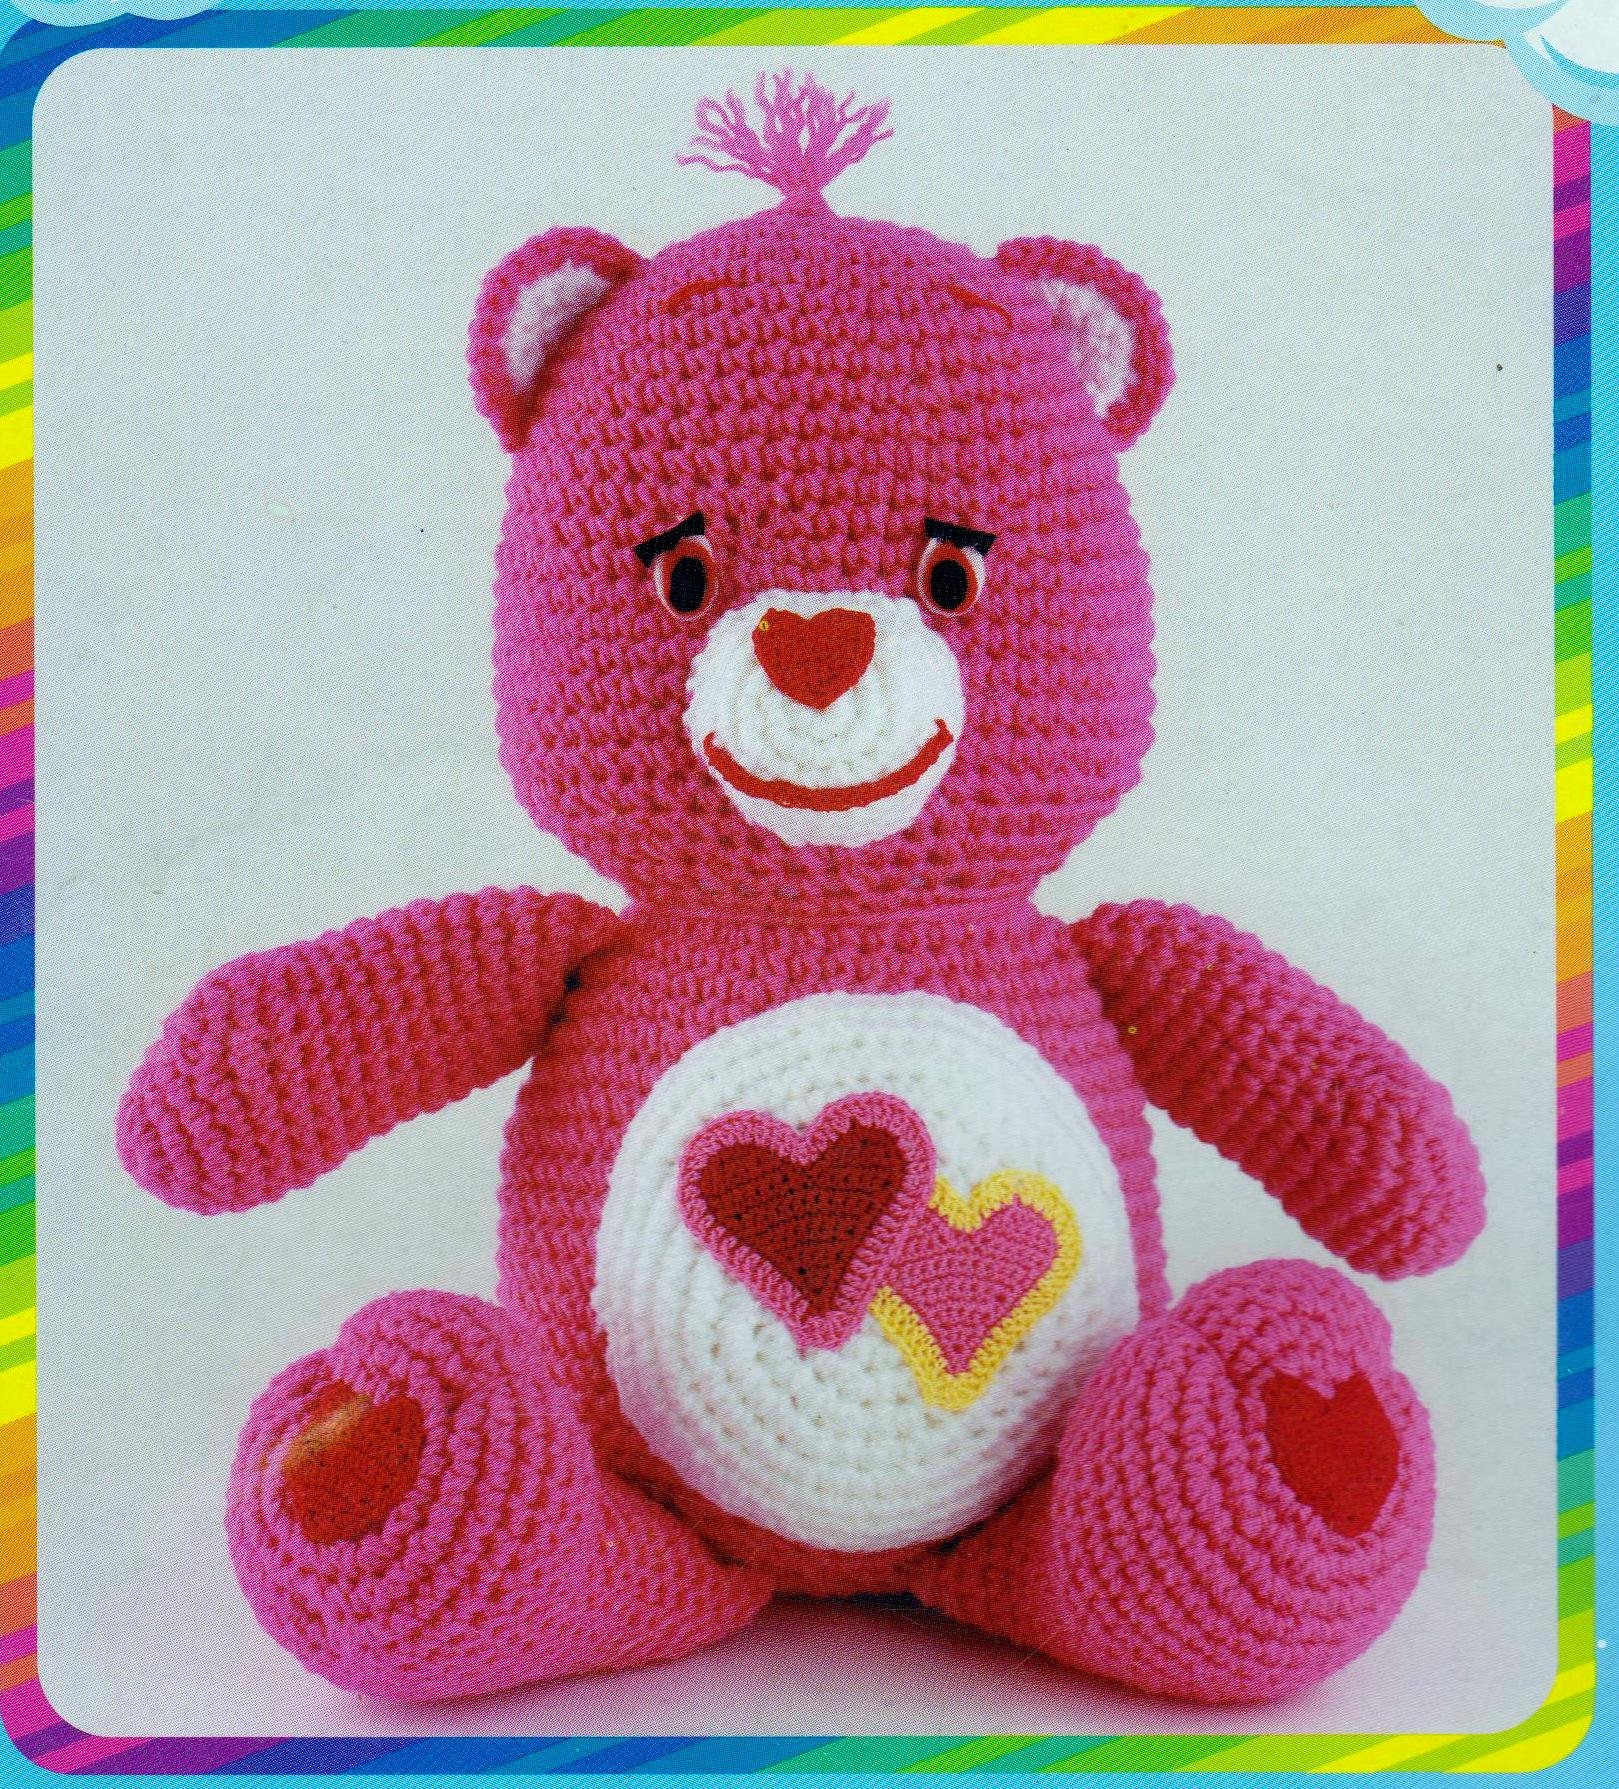 Care bears crochet characters craft patterns instruction book 10 350 shipping bankloansurffo Choice Image